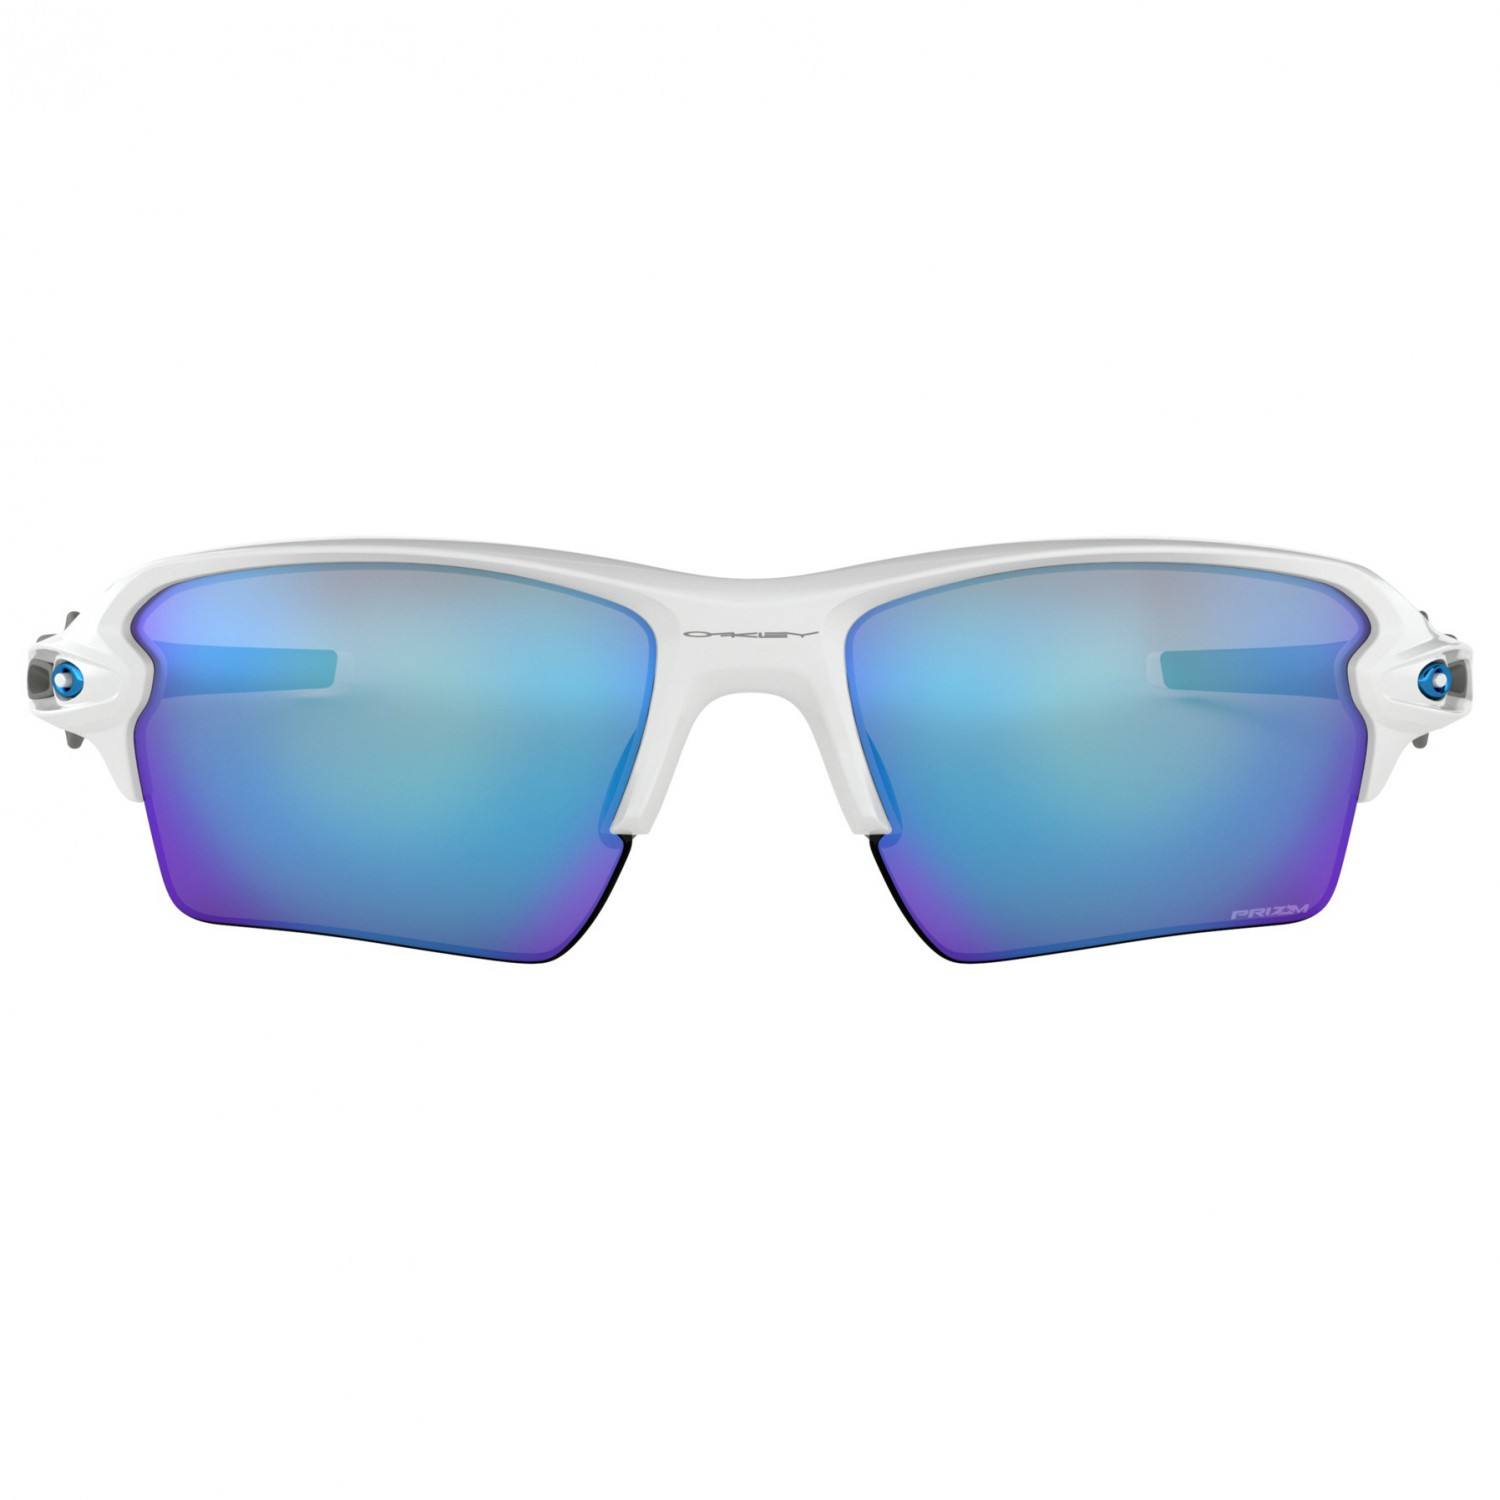 ce4d698875 low price oakley sunglasses bike 66 books b2cc3 7fe86